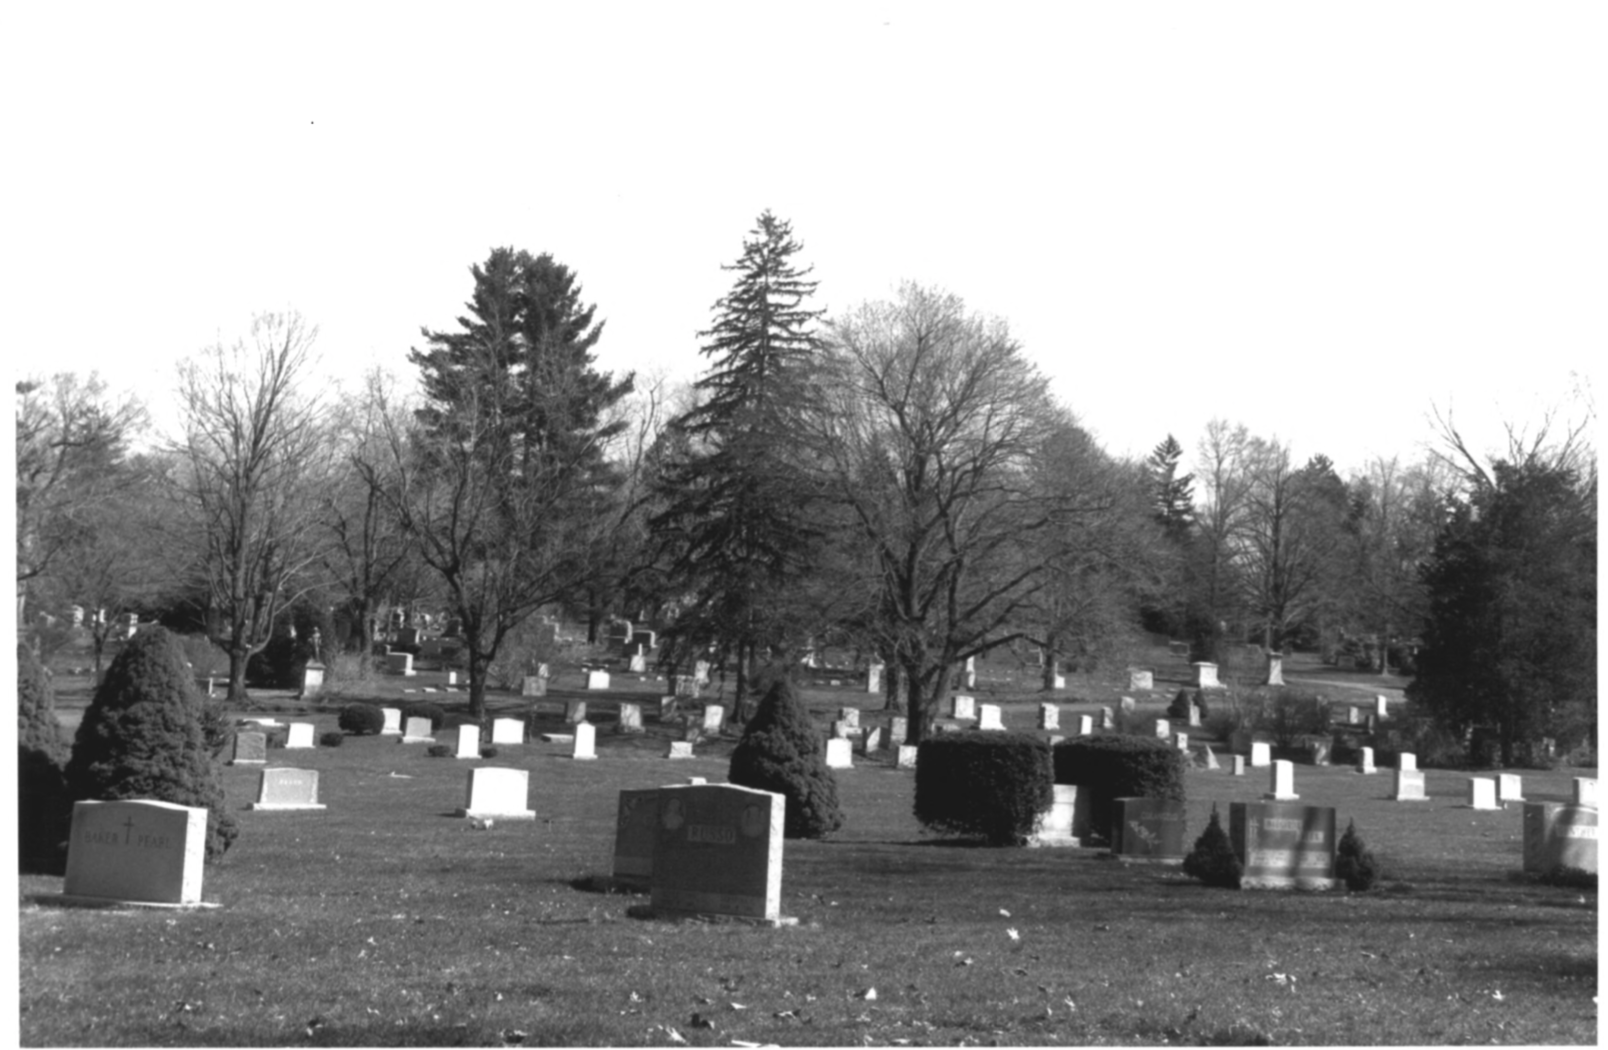 1997 NPS Photo Record of Cedar Hill Cemetary #14